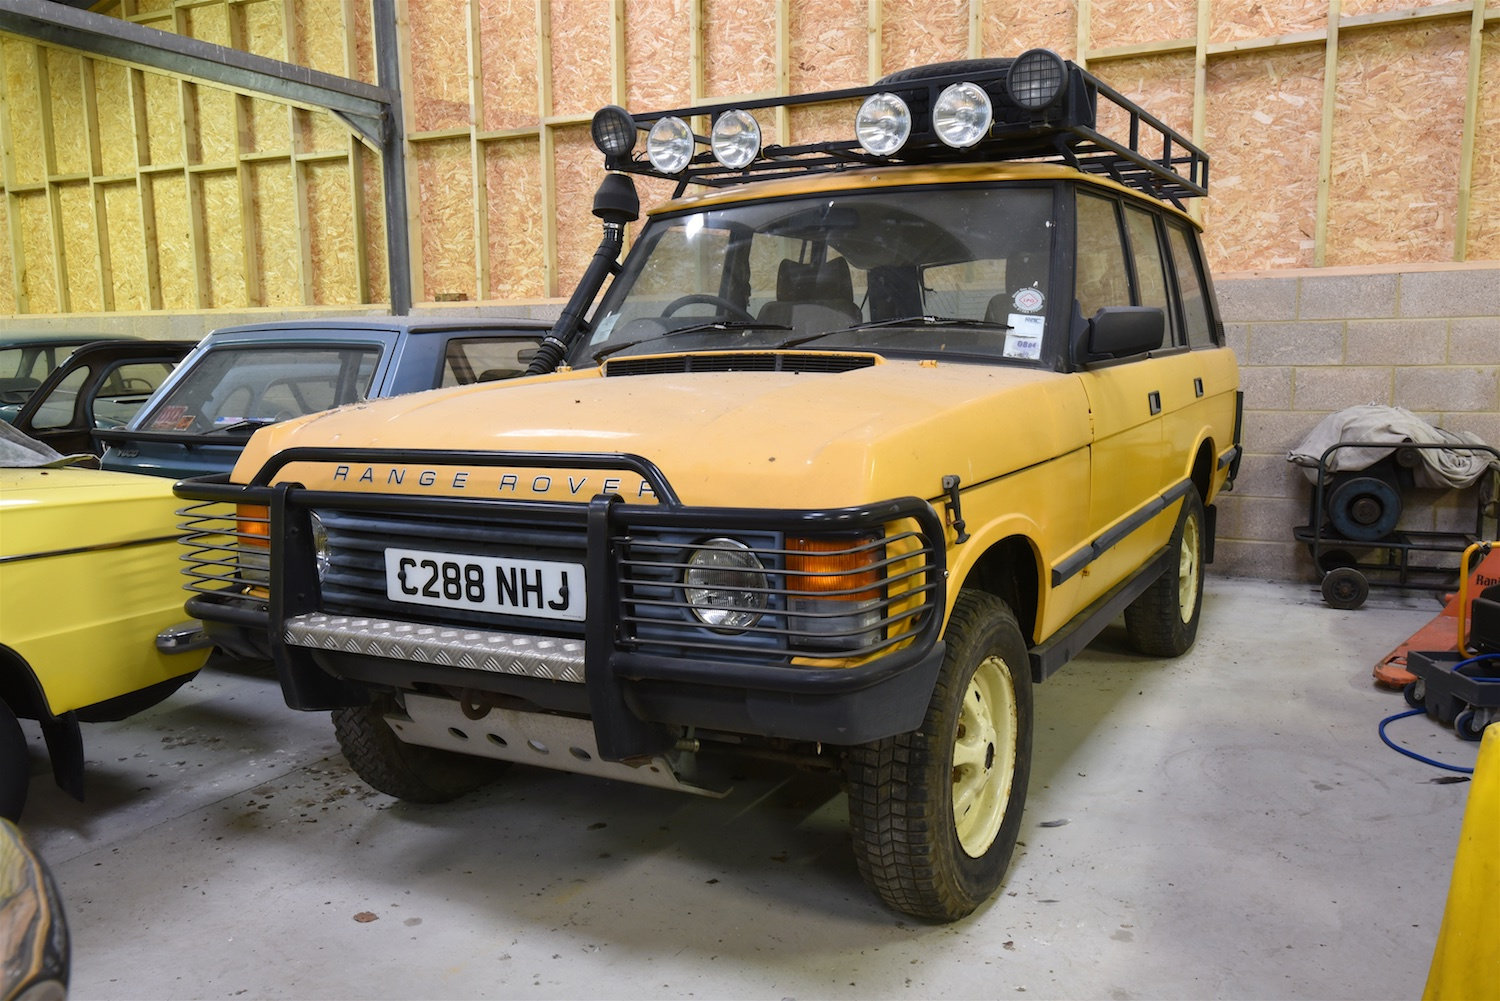 1985 Range Rover Classic – Camel Trophy replica For Sale (picture 3 of 6)